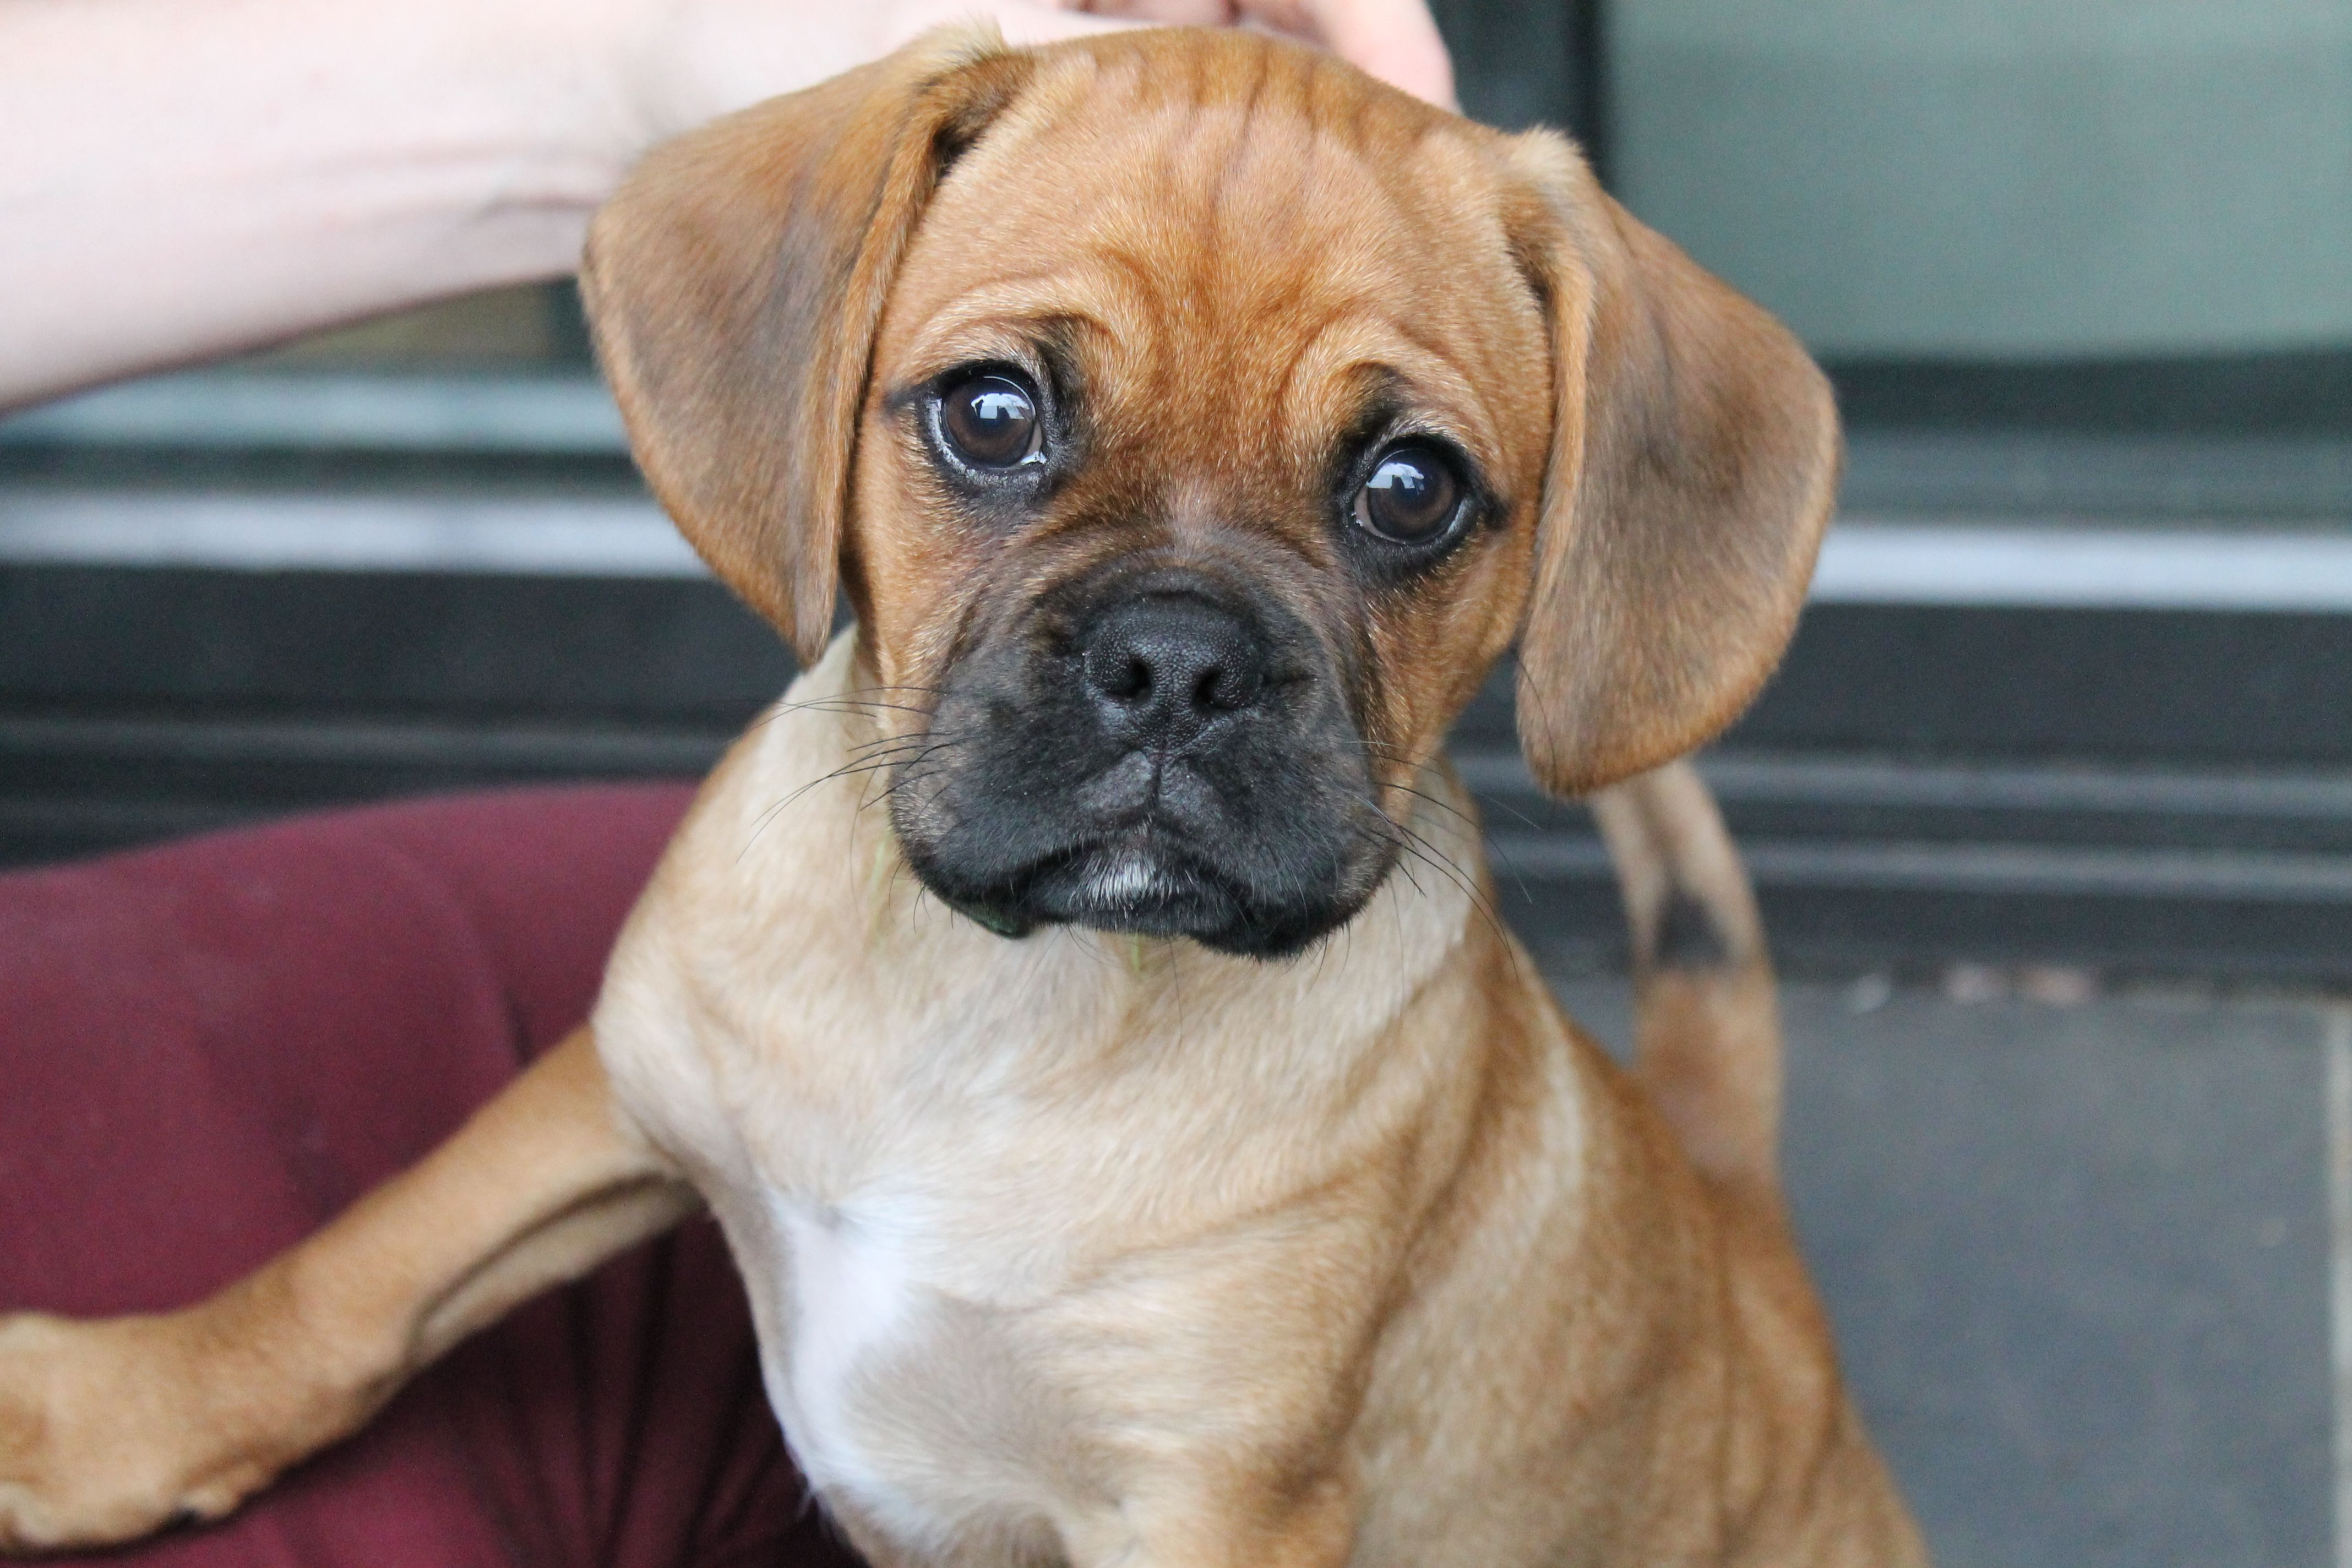 Possibly The Cutest Dog Baxter The Pugalier Hybrid Dogs Dogs